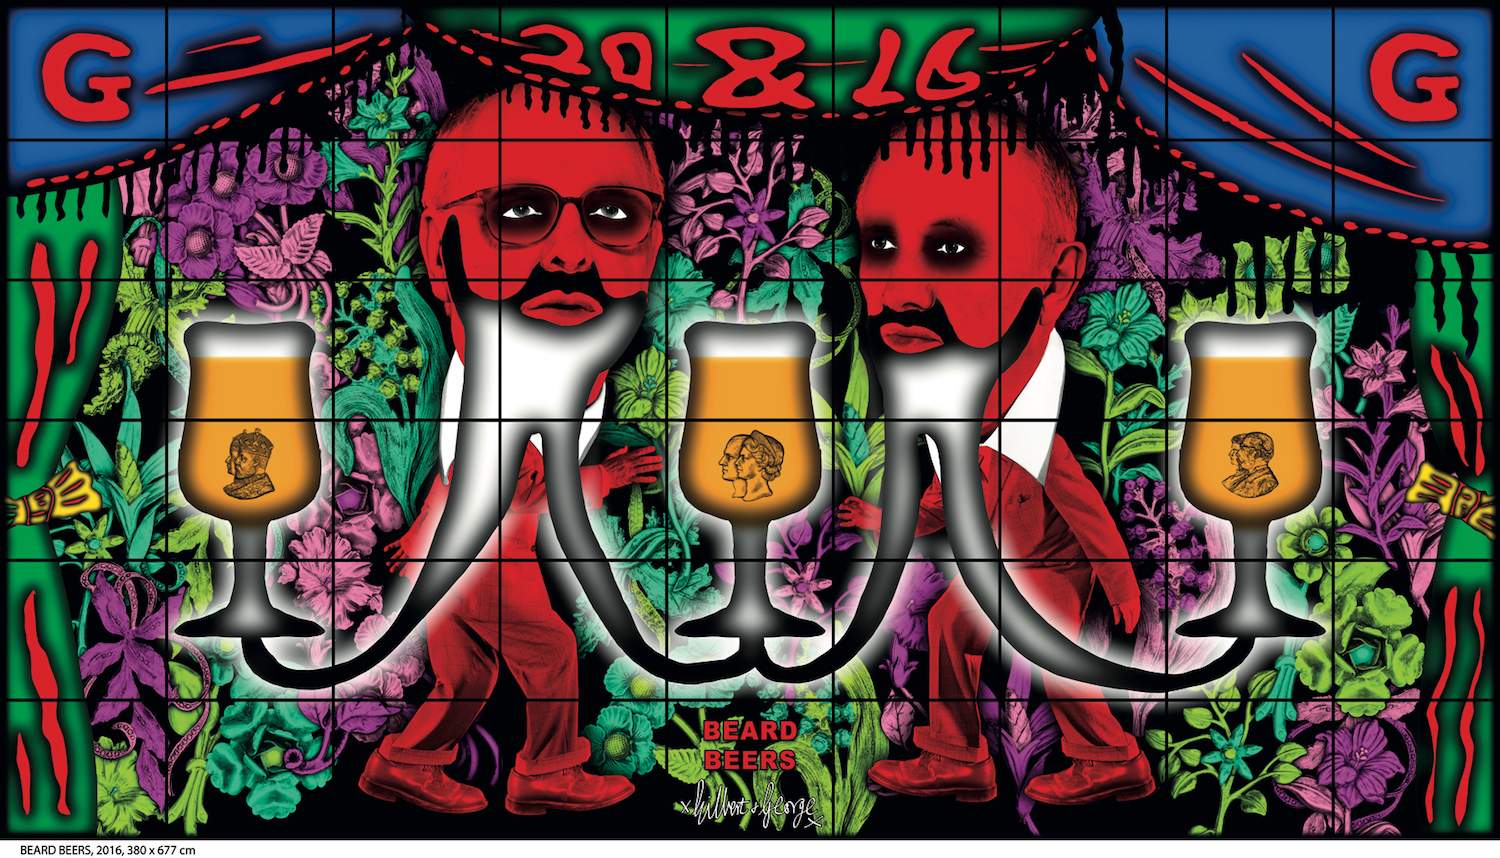 Image: Gilbert and George, BEARD BEERS, 2016. Courtesy of Galerie Thaddaeus Ropac